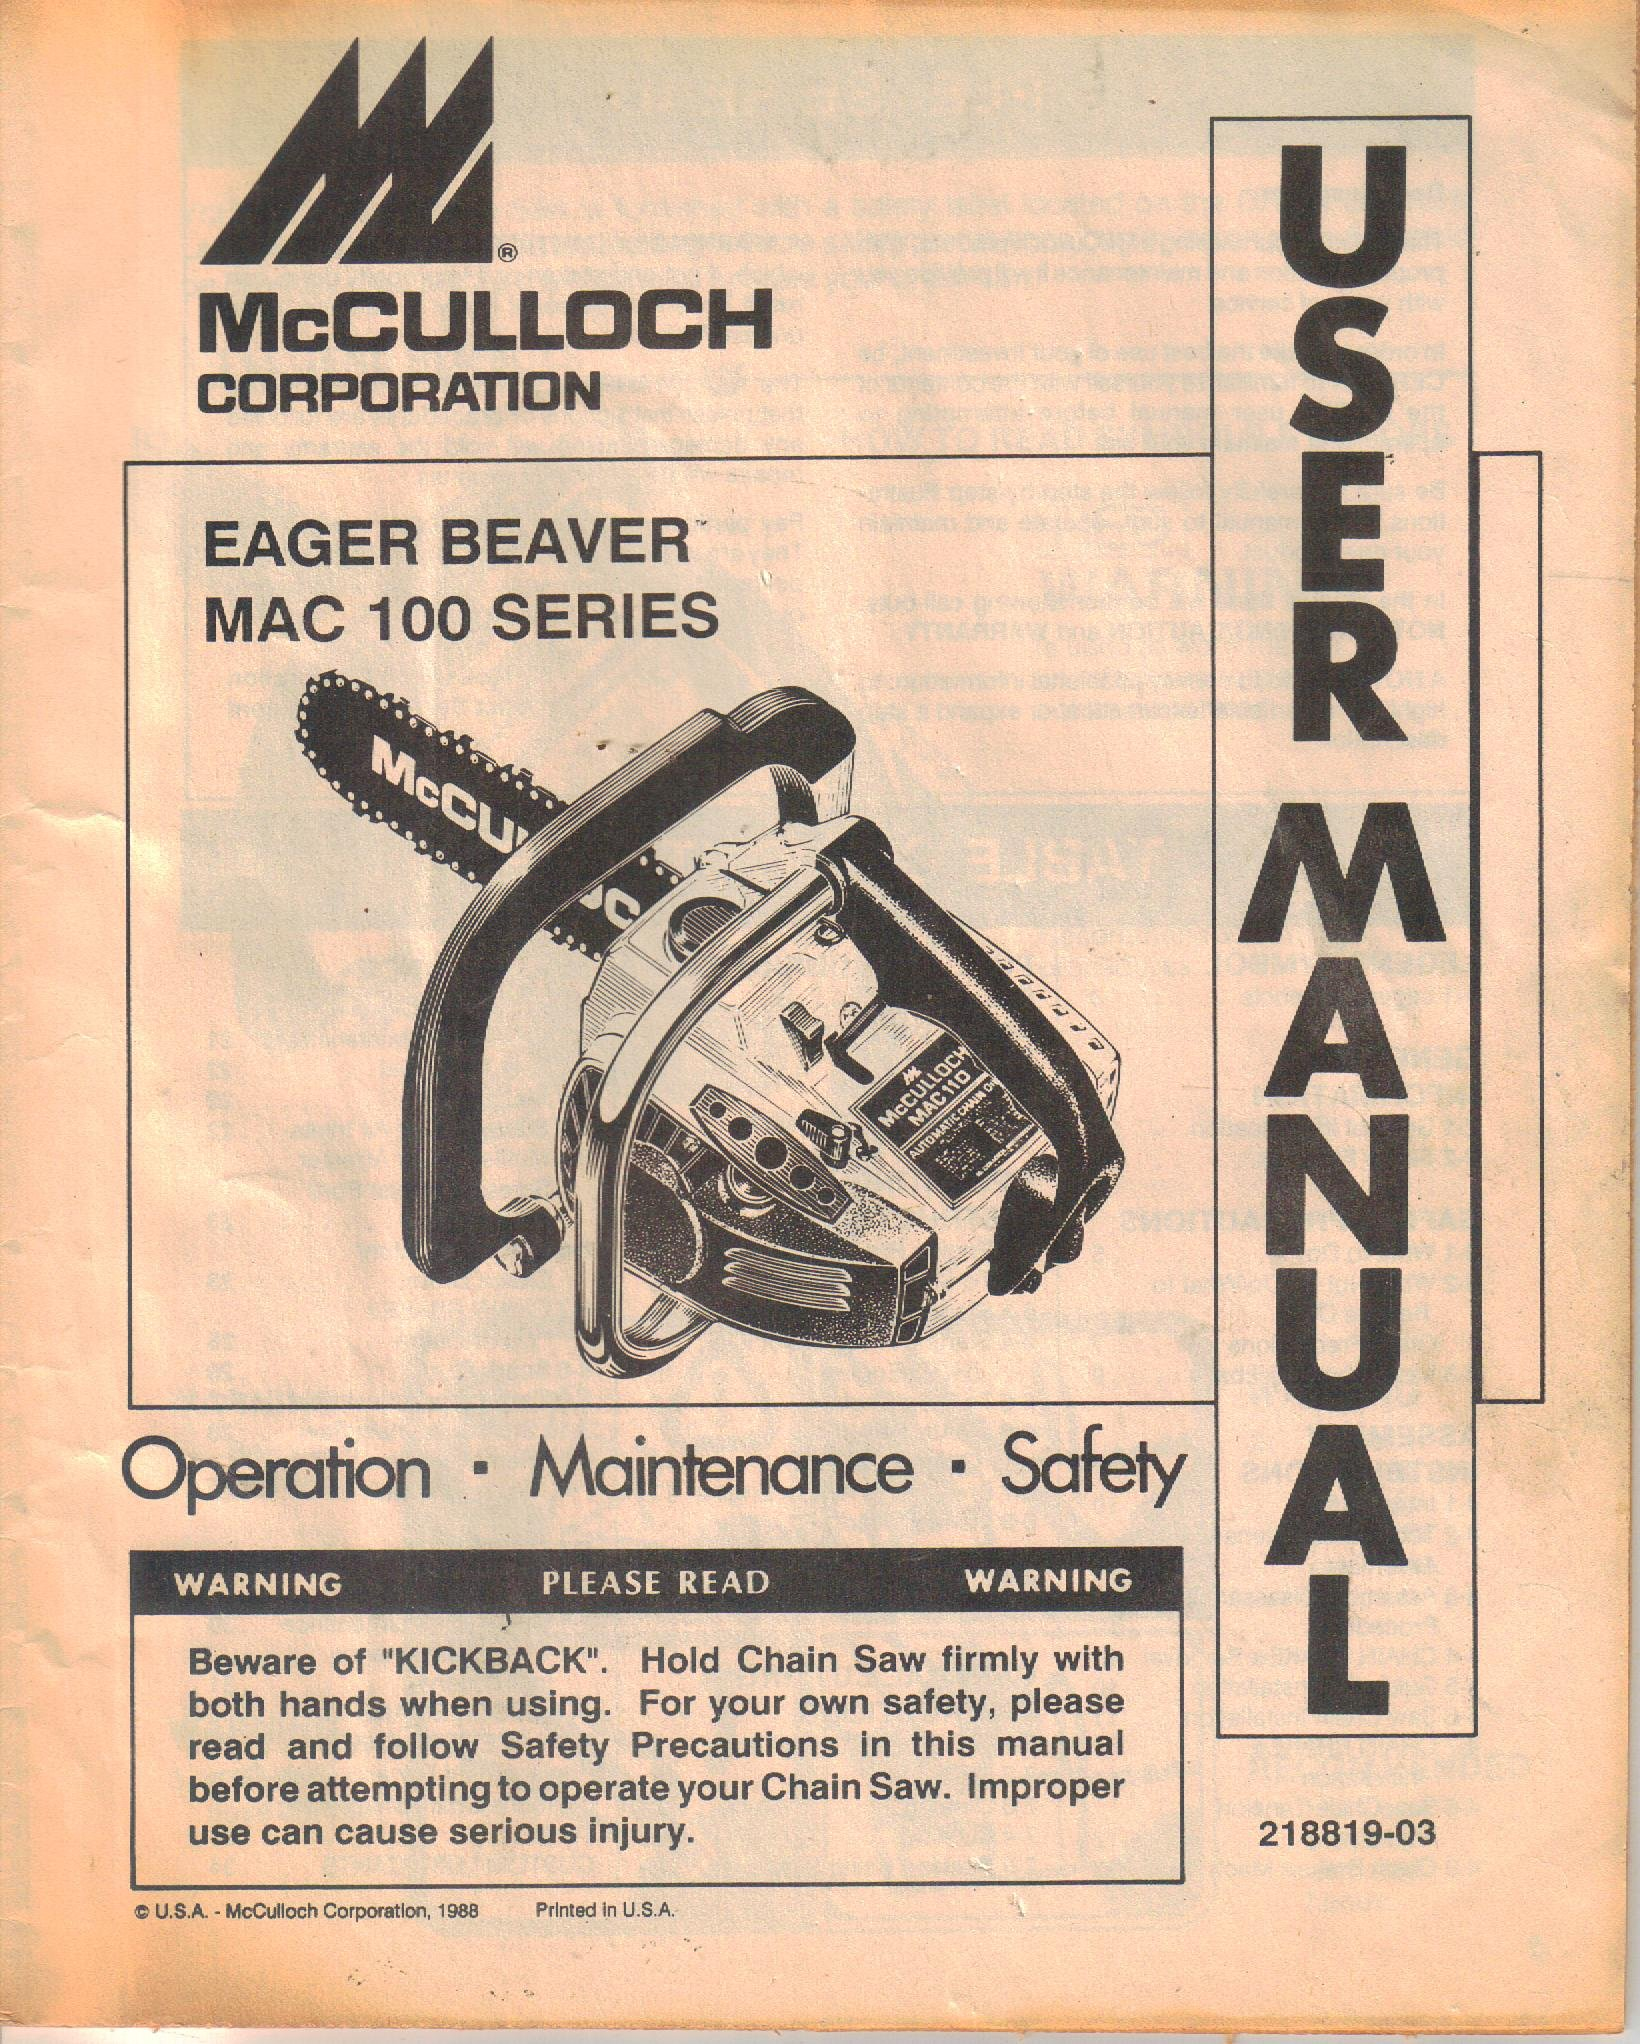 Mcculloch eager beaver mac 100 series chain saw operator manual mcculloch eager beaver mac 100 series chain saw operator manual maintenance safety user guide mcculloch not stated amazon books fandeluxe